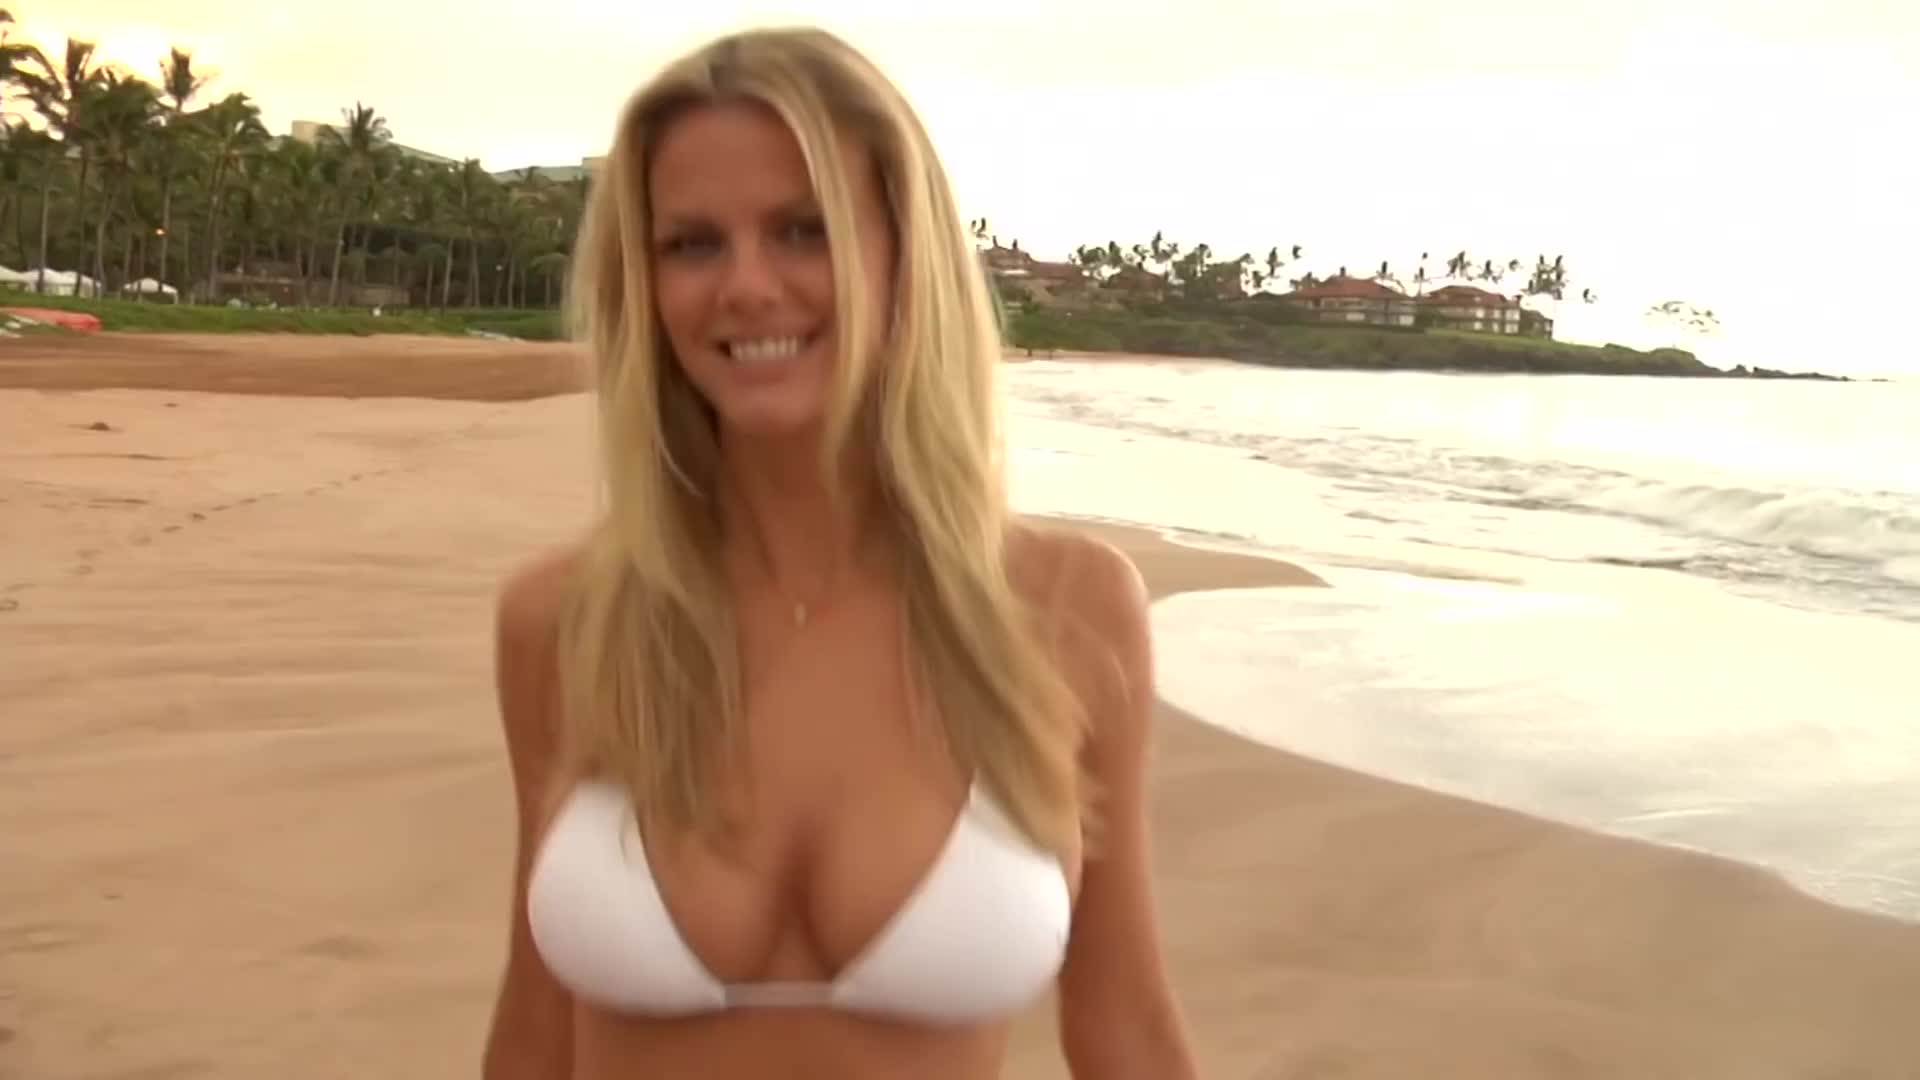 2017, brooklyn decker, brooklyn decker acting, brooklyn decker hawaii, brooklyn decker movie, brooklyn decker si swimsuit, brooklyn decker2011, brooklyn deckeracting, brooklyn deckerbikini, brooklyn deckerinterview, brooklyndecker, Brooklyn Decker Shows Off Her Star Qualities In Hawaii | On Set | Sports Illustrated Swimsuit GIFs